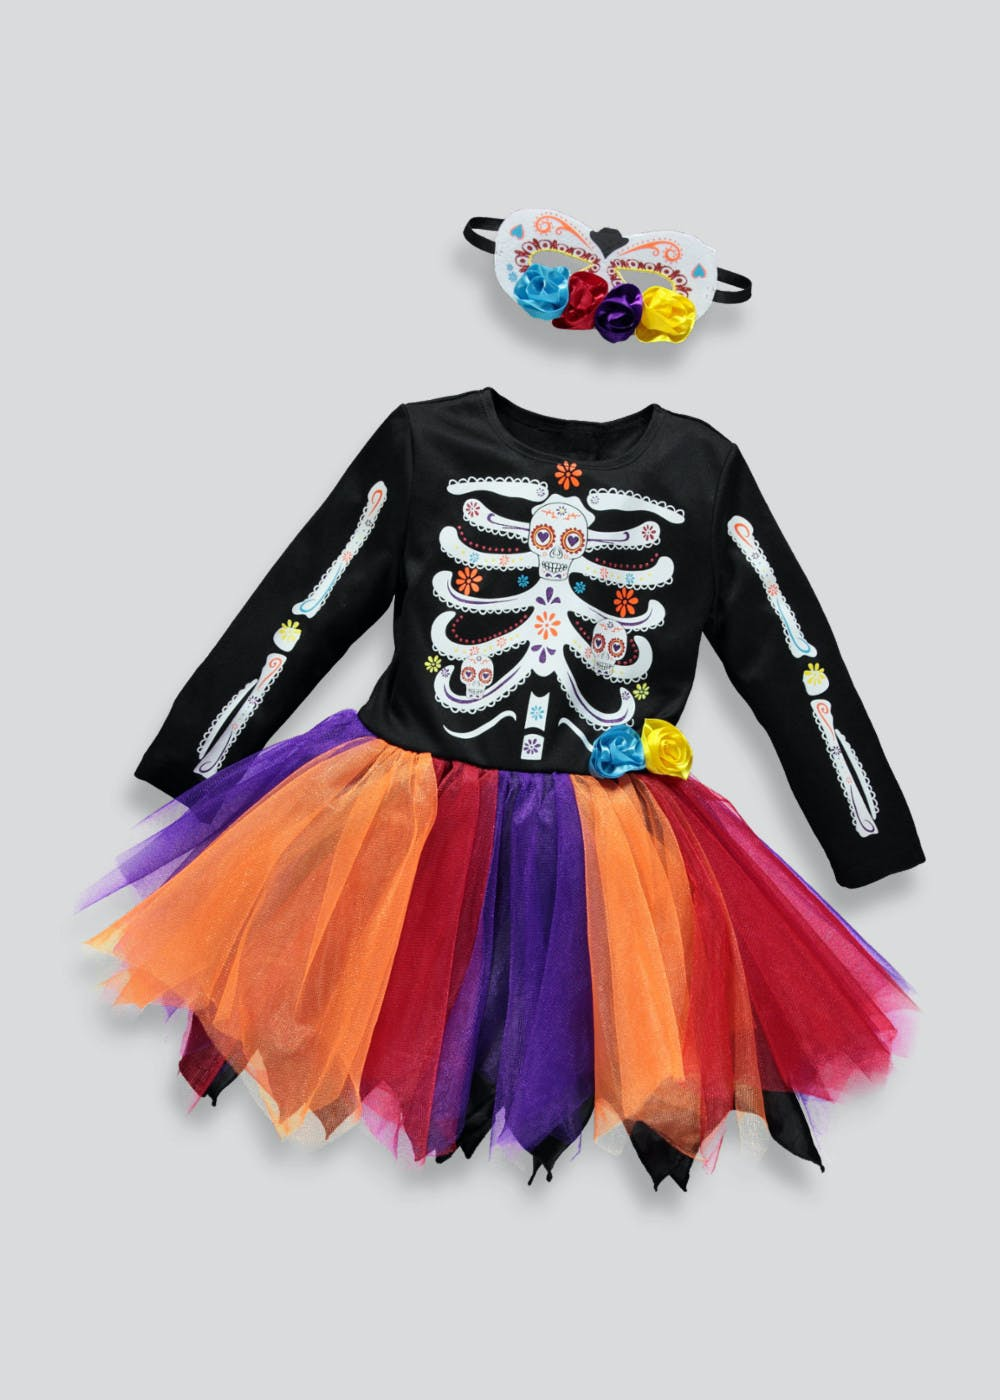 Halloween Costume 303.Kids Day Of The Dead Halloween Costume 12mths 11yrs